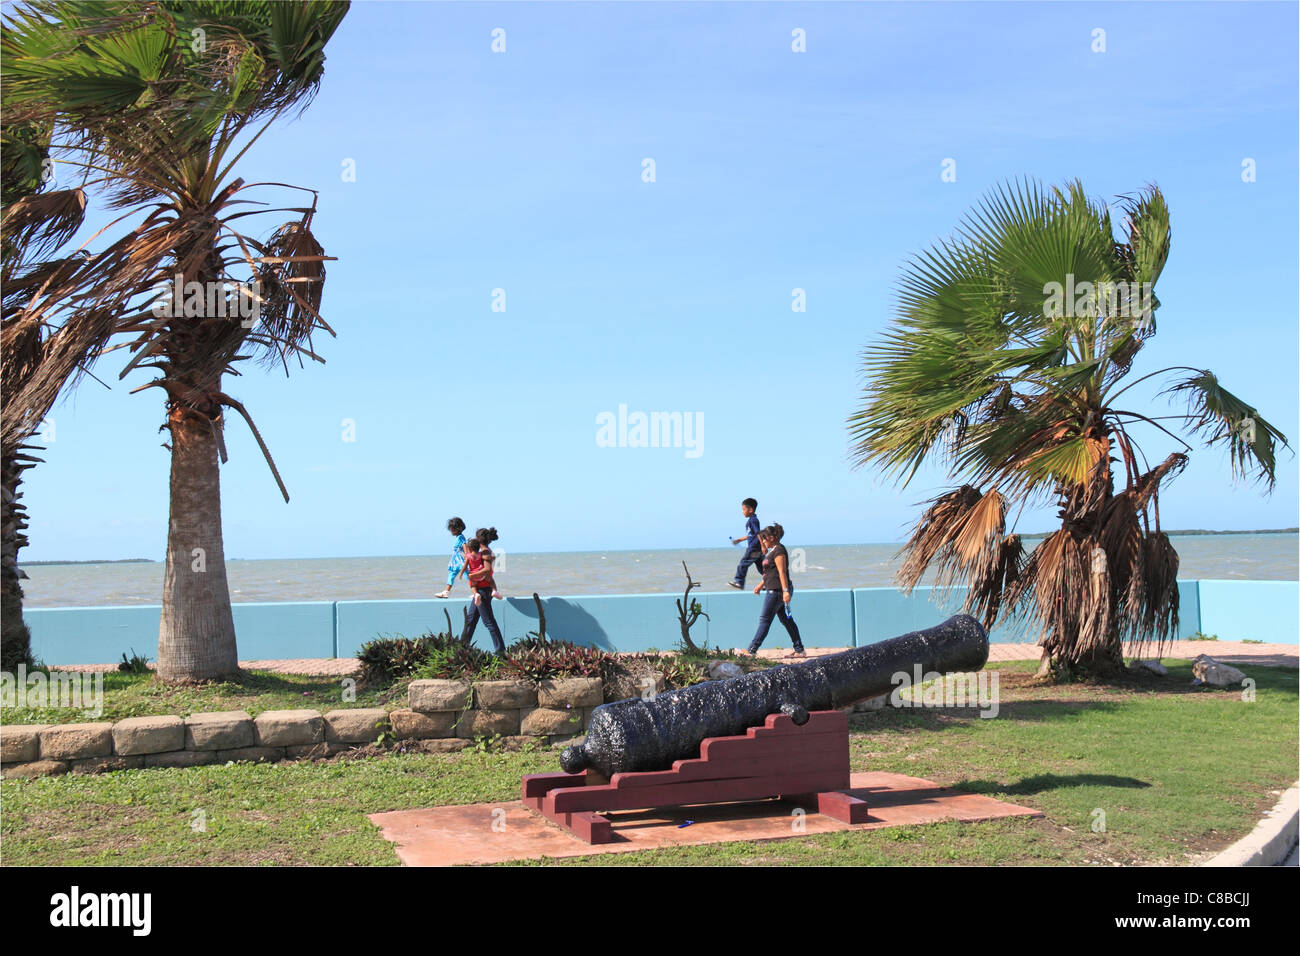 Marine Parade, Fort George, Belize City, Belize, Caribbean, Central America - Stock Image